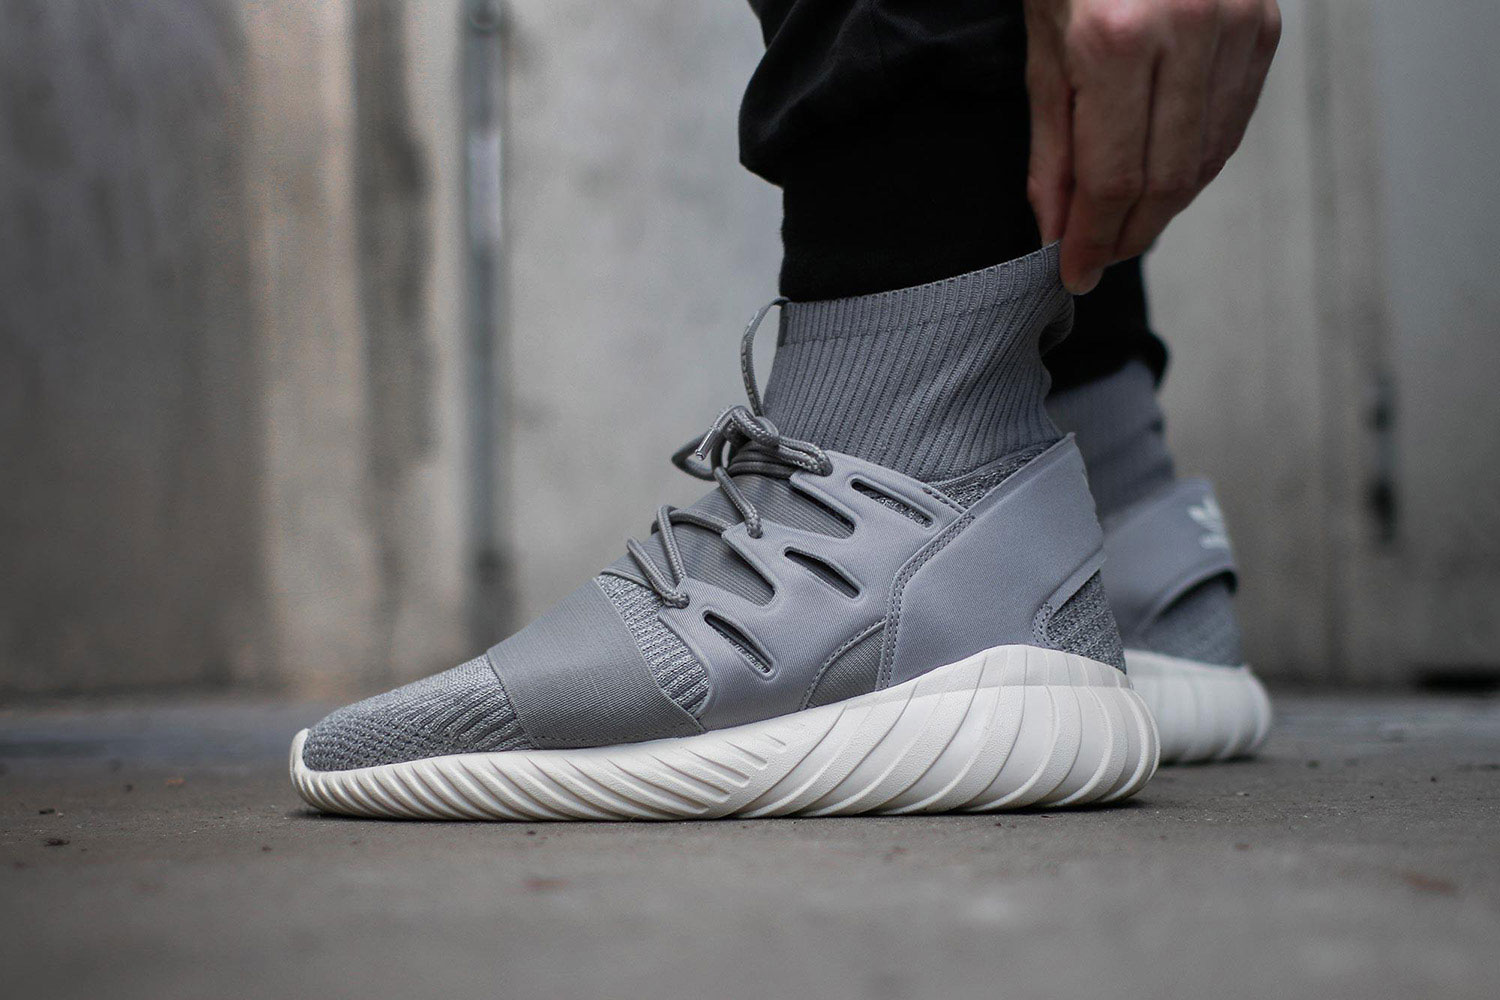 The adidas Tubular Doom Primeknit Night Marine Is Now Available